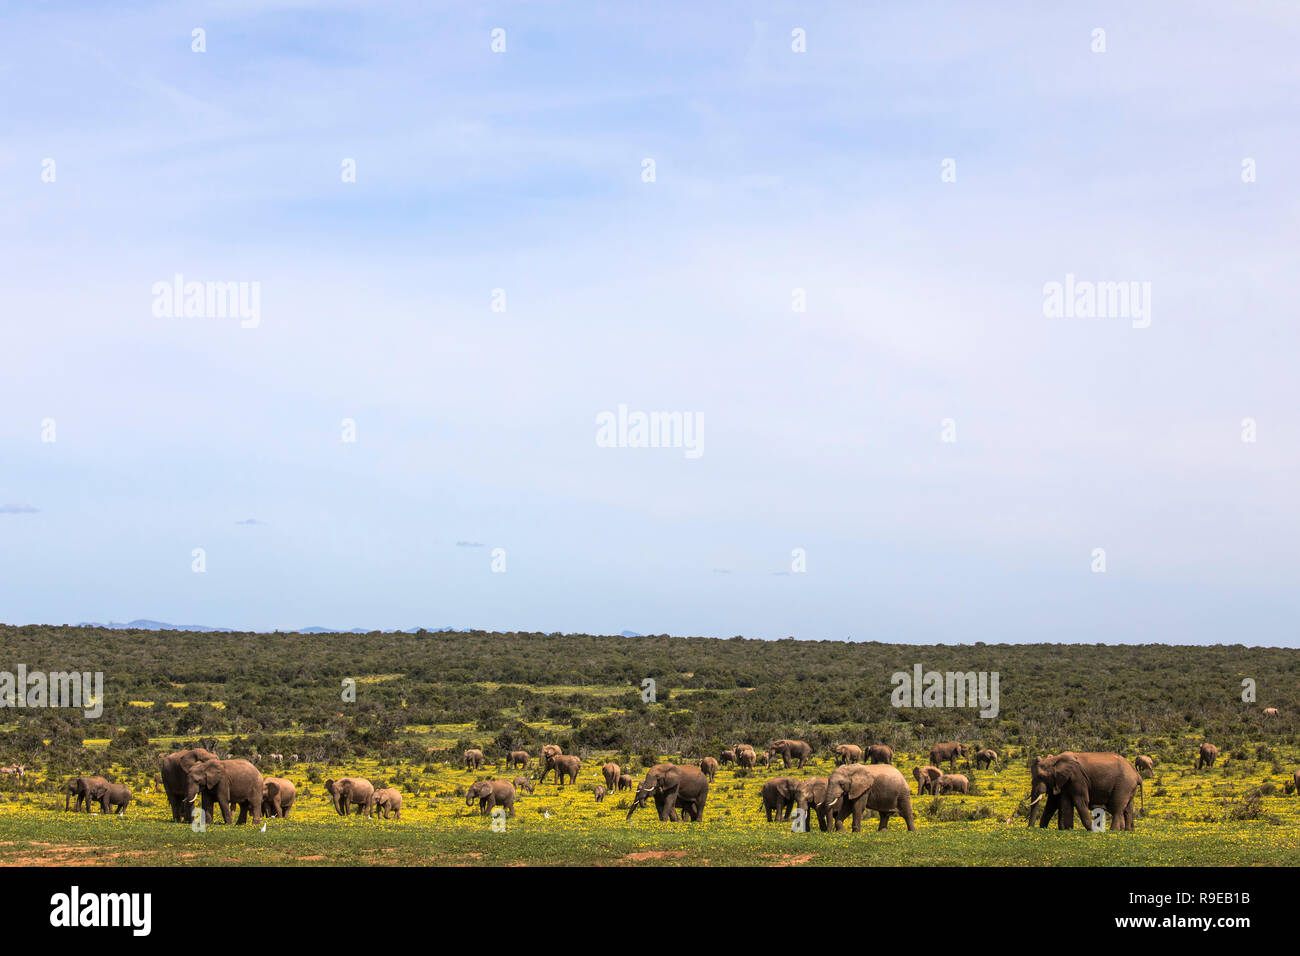 African elephants (Loxodonta africana) in springflowers, Addo elephant national park, Eastern Cape, South Africa, - Stock Image